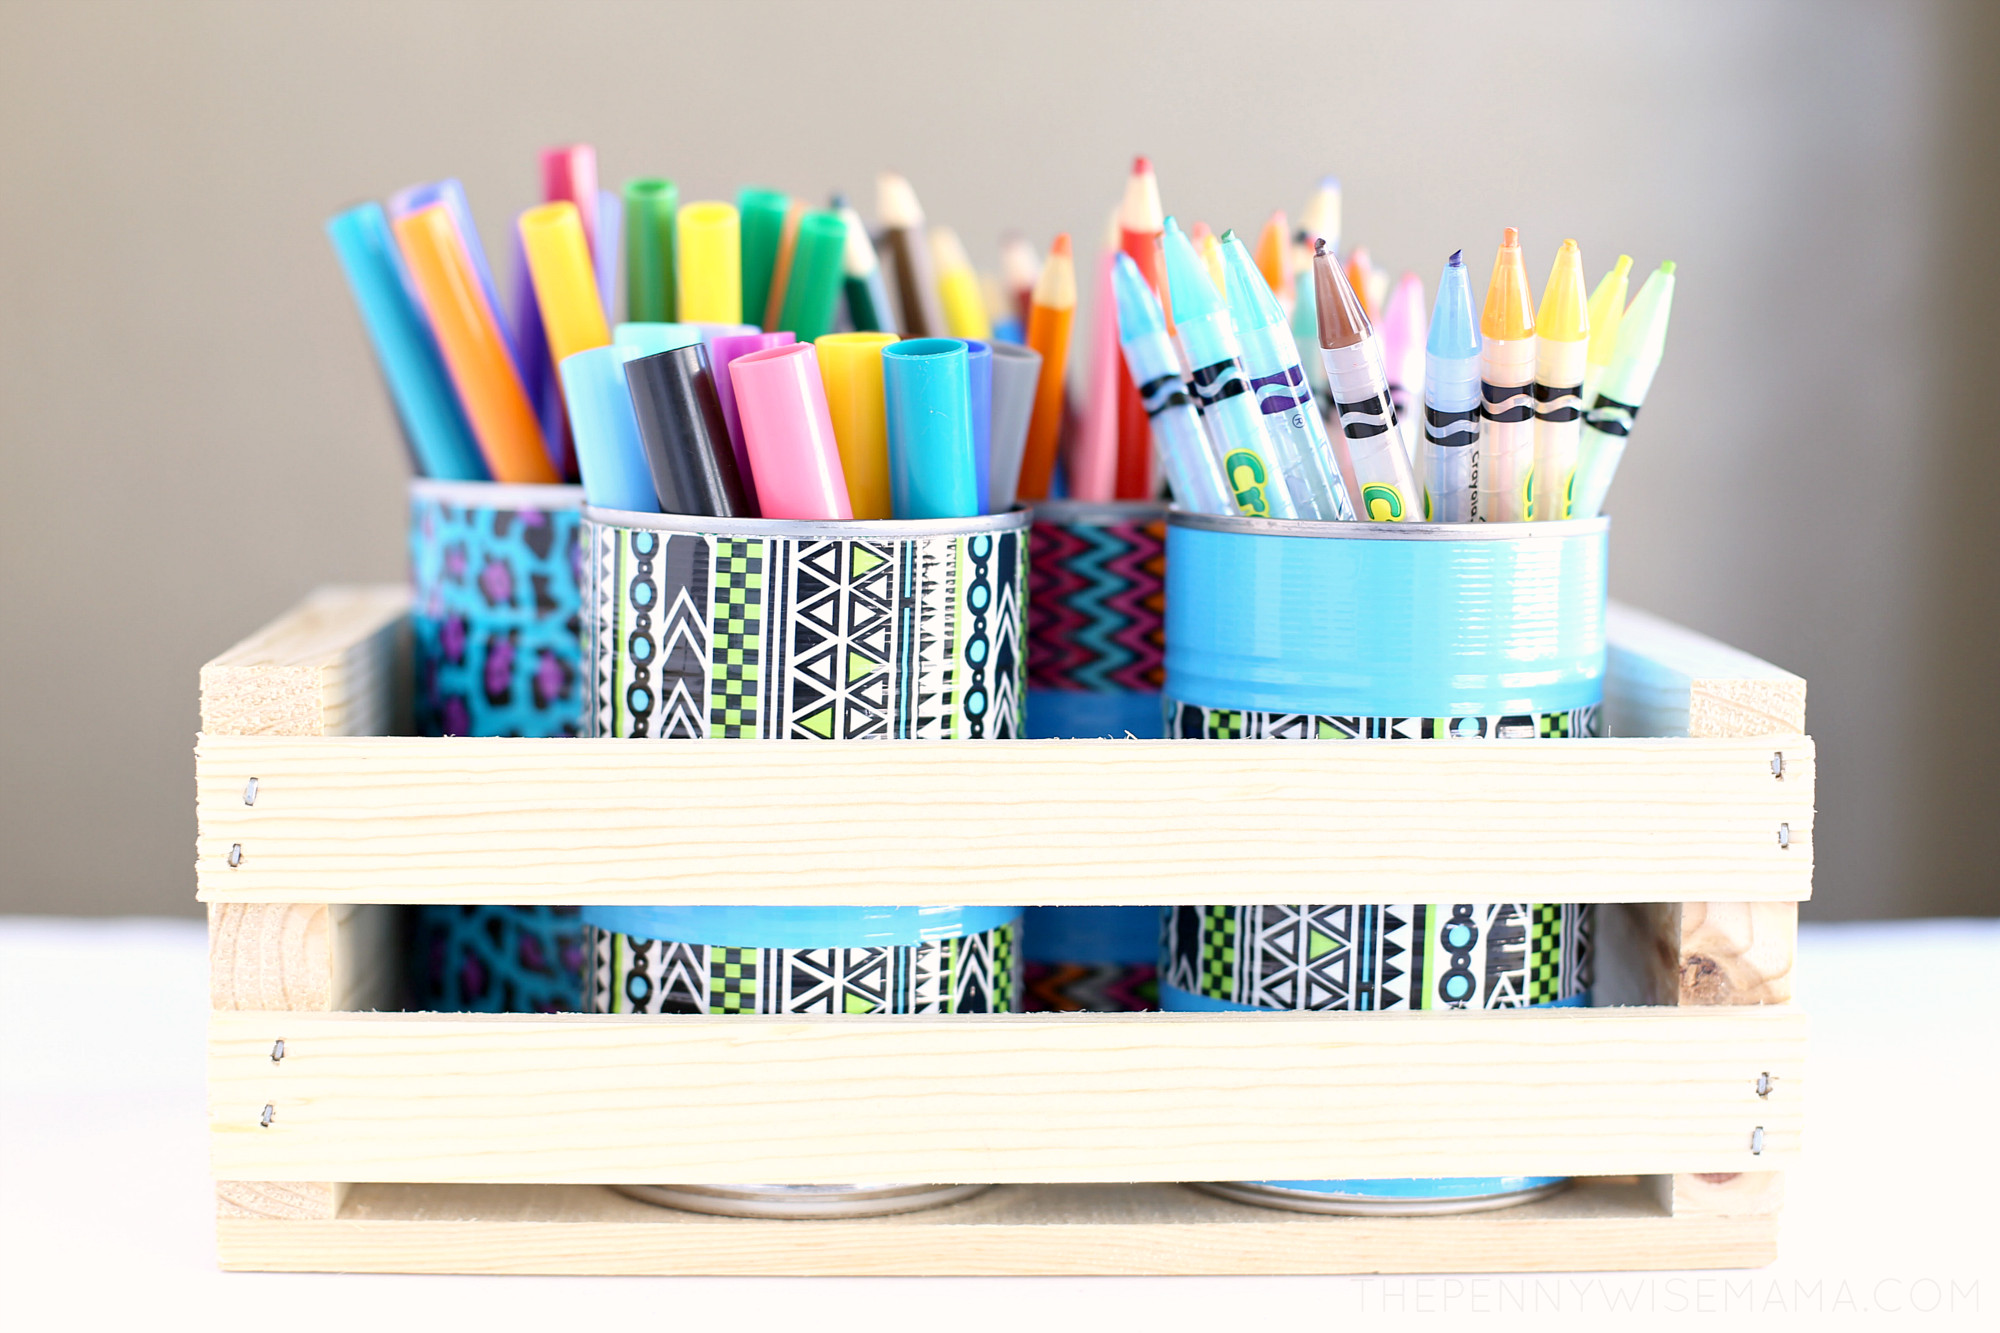 Best ideas about DIY Pencil Organizer . Save or Pin DIY Duck Tape Pencil Holder & Art Organizer Giveaway Now.